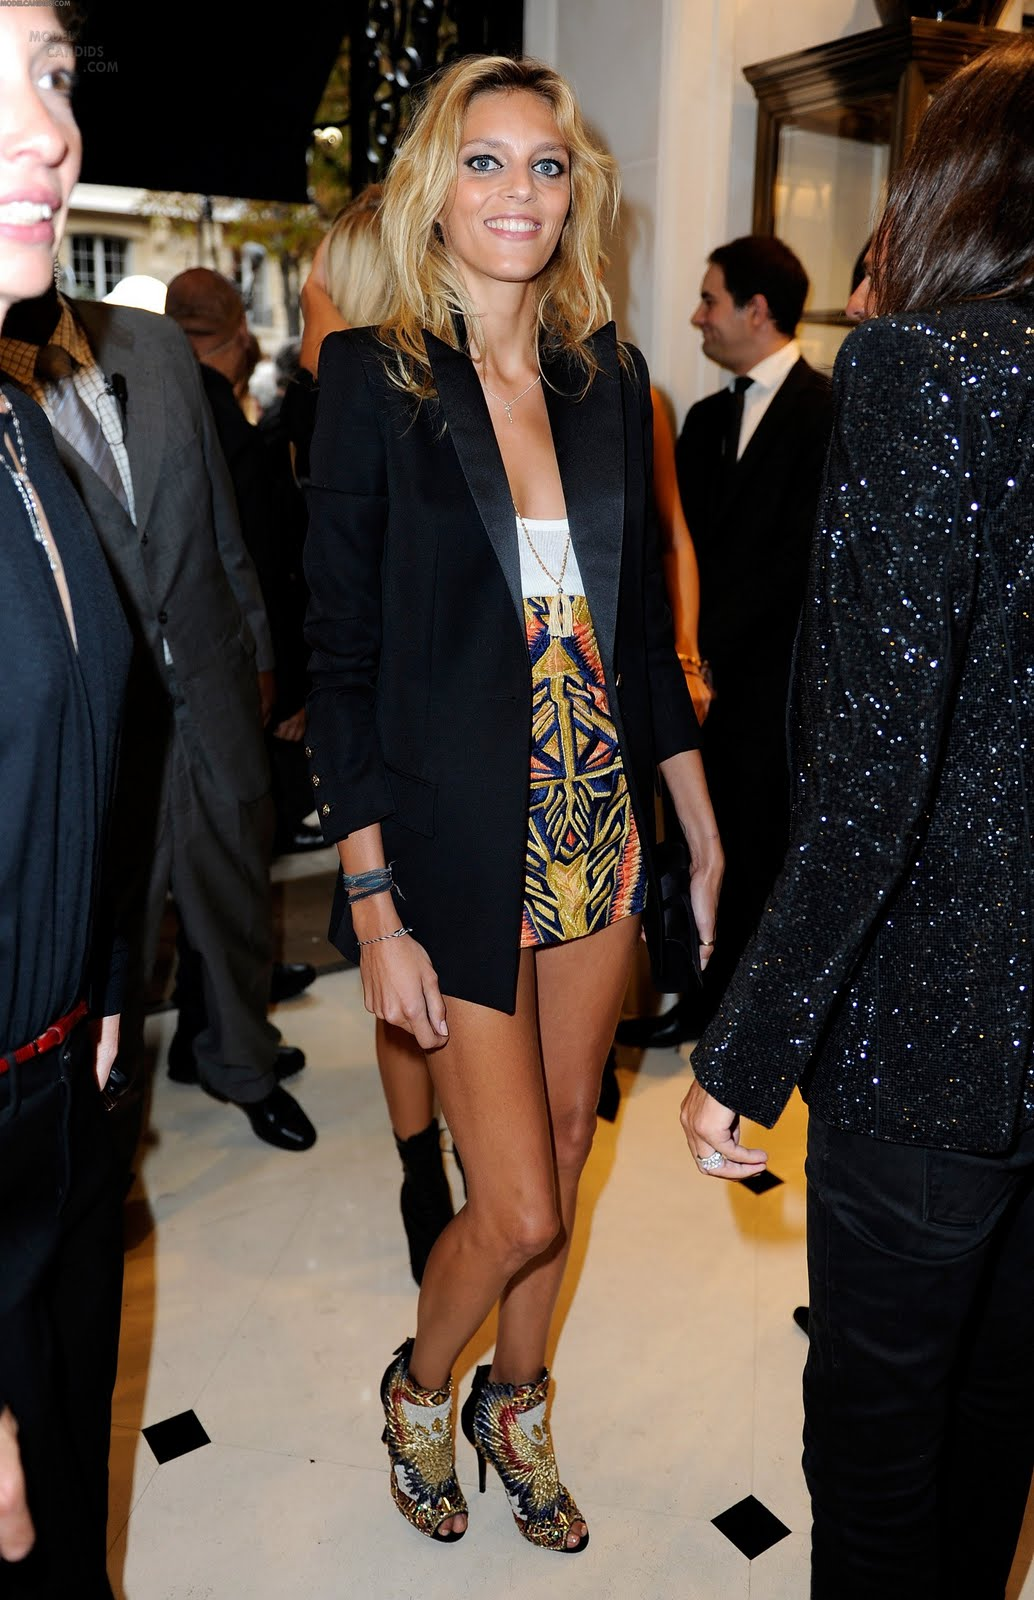 http://3.bp.blogspot.com/-pAEJYqKz4nM/TmqzA_ETs2I/AAAAAAAAHtk/1JYOciIC4N4/s1600/anja-rubik-arrives-to-the-12.jpg